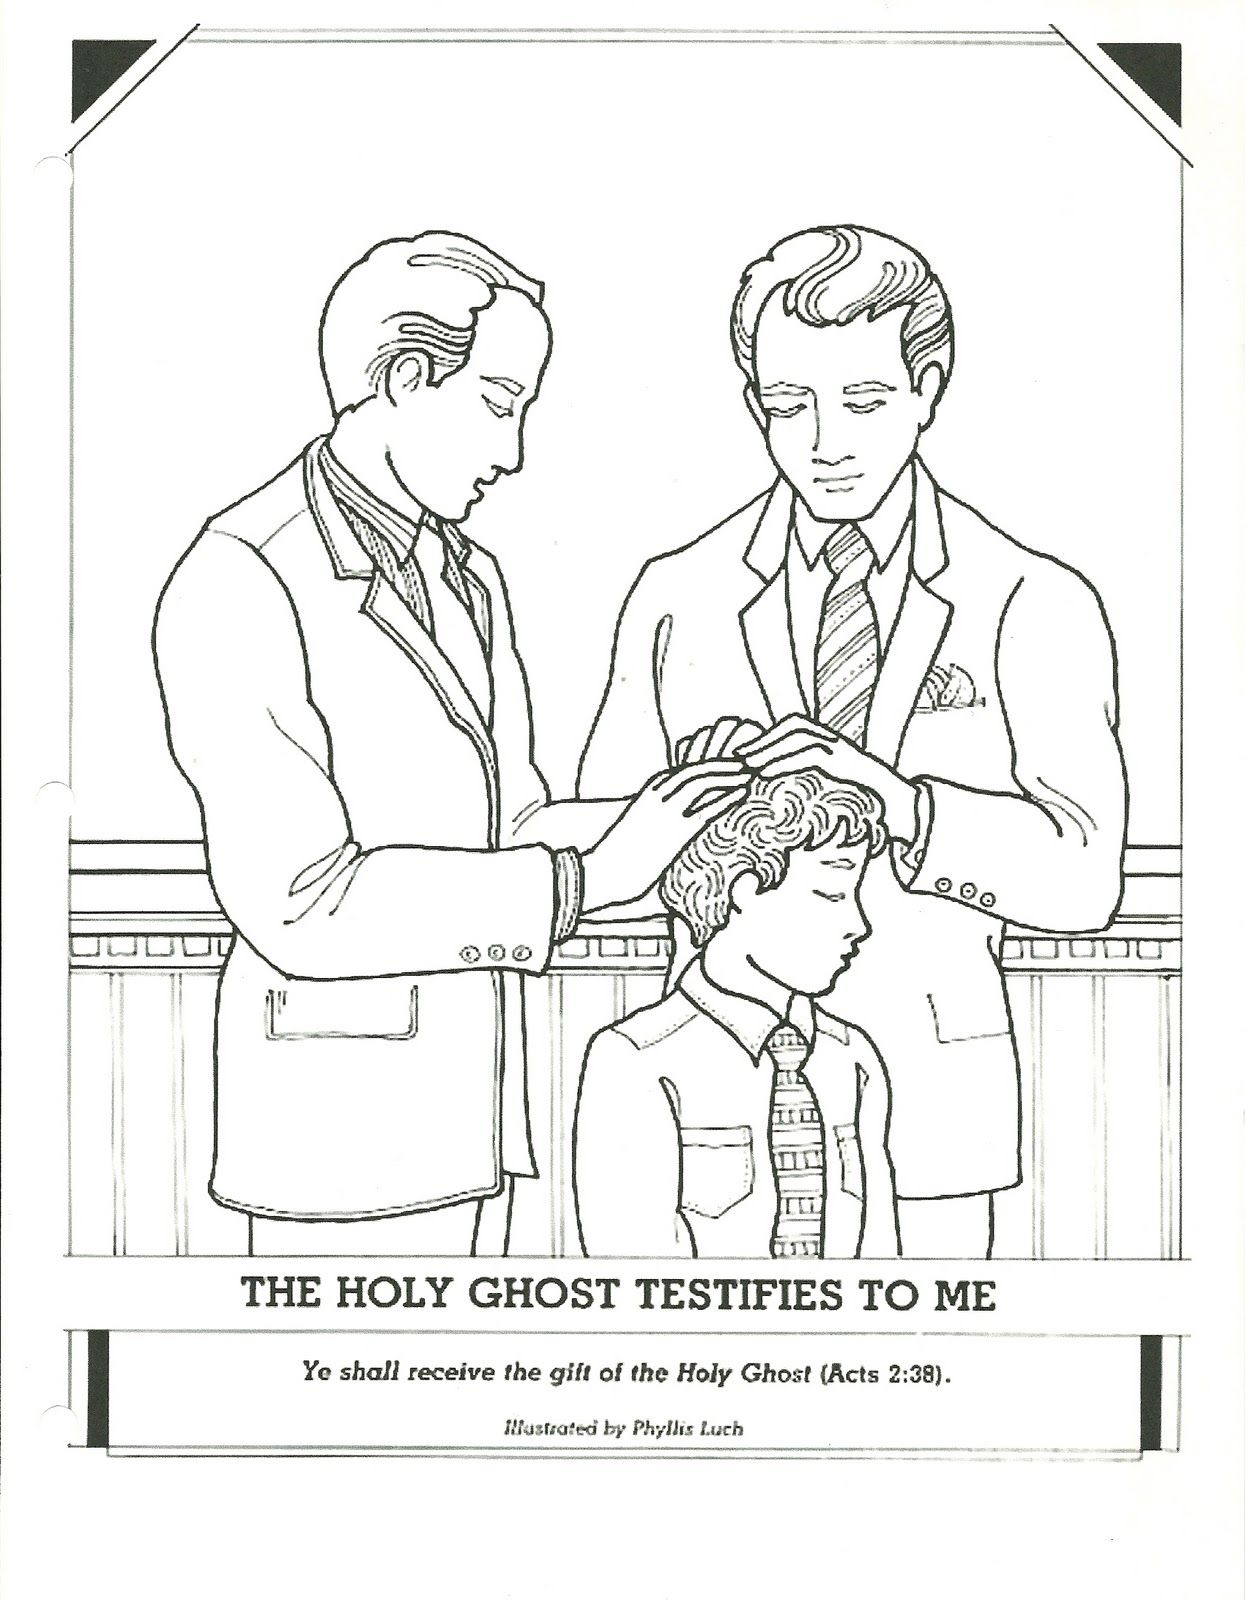 Primary 2 Manual Lesson 13 The Gift Of The Holy Ghost Can Help Me When I Explain That After Baptism We Have Hands Lds Coloring Pages Holy Ghost Coloring Pages